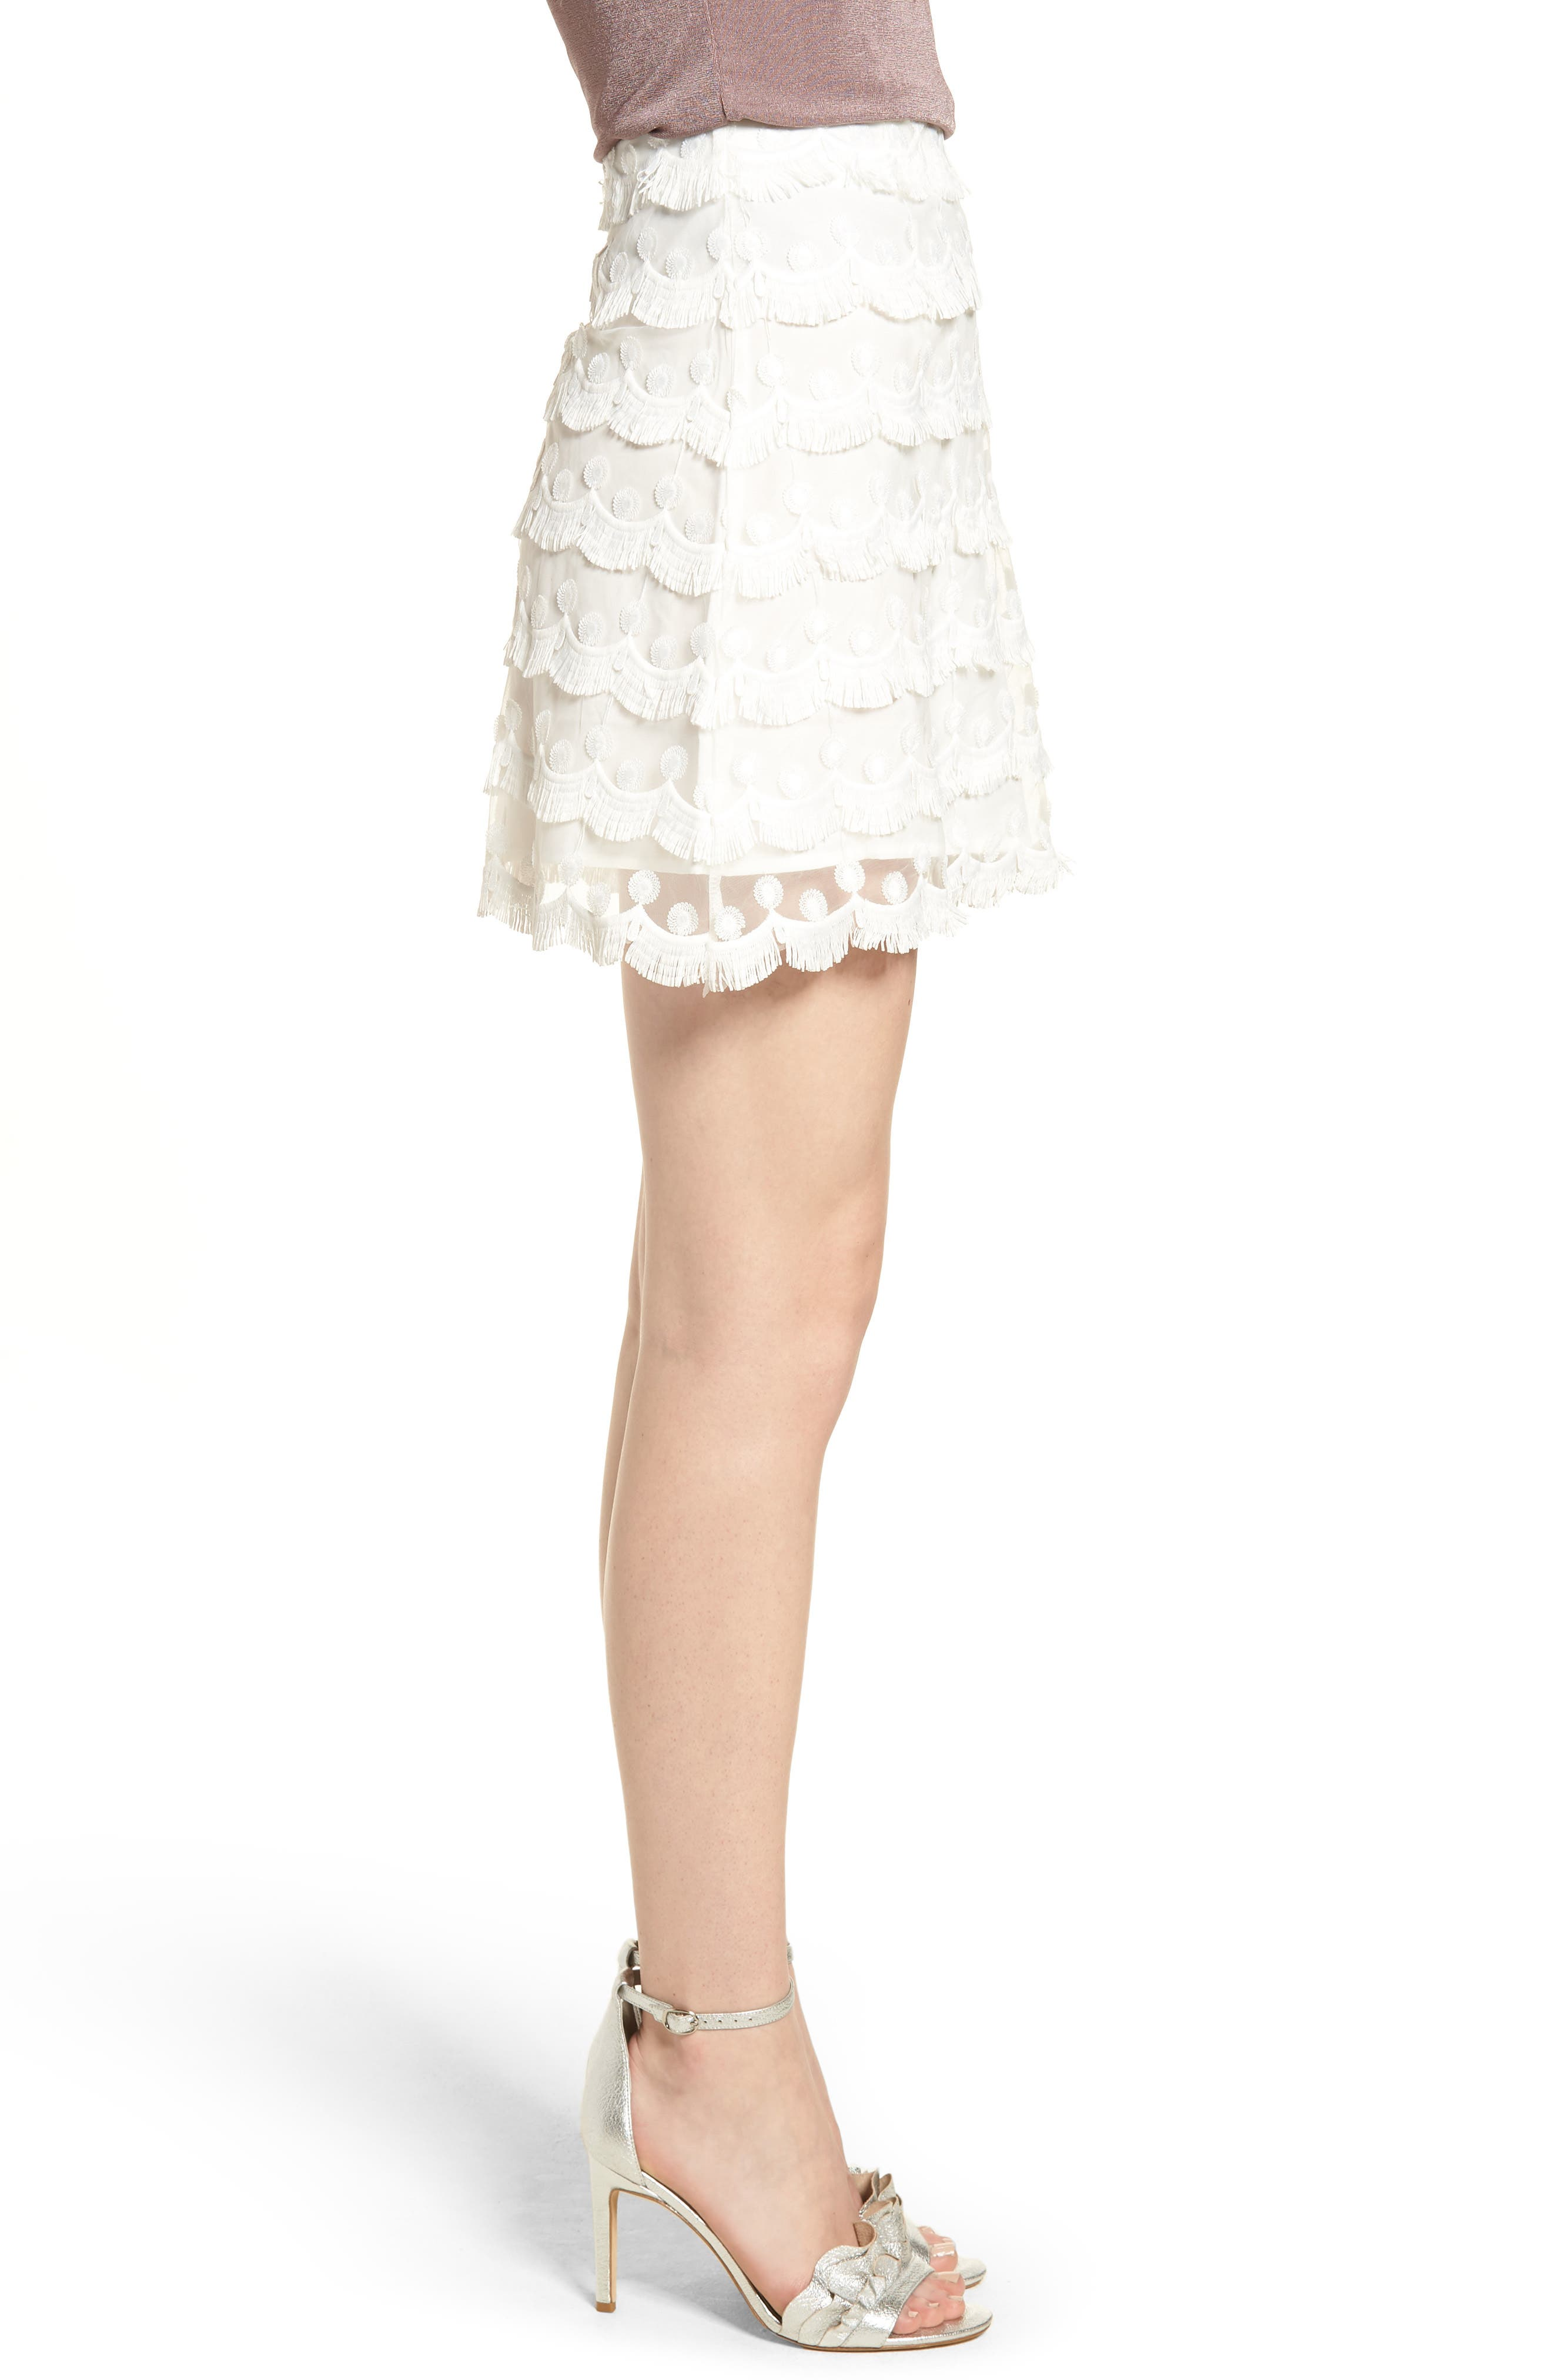 3D Lace Fringed Miniskirt,                             Alternate thumbnail 4, color,                             White